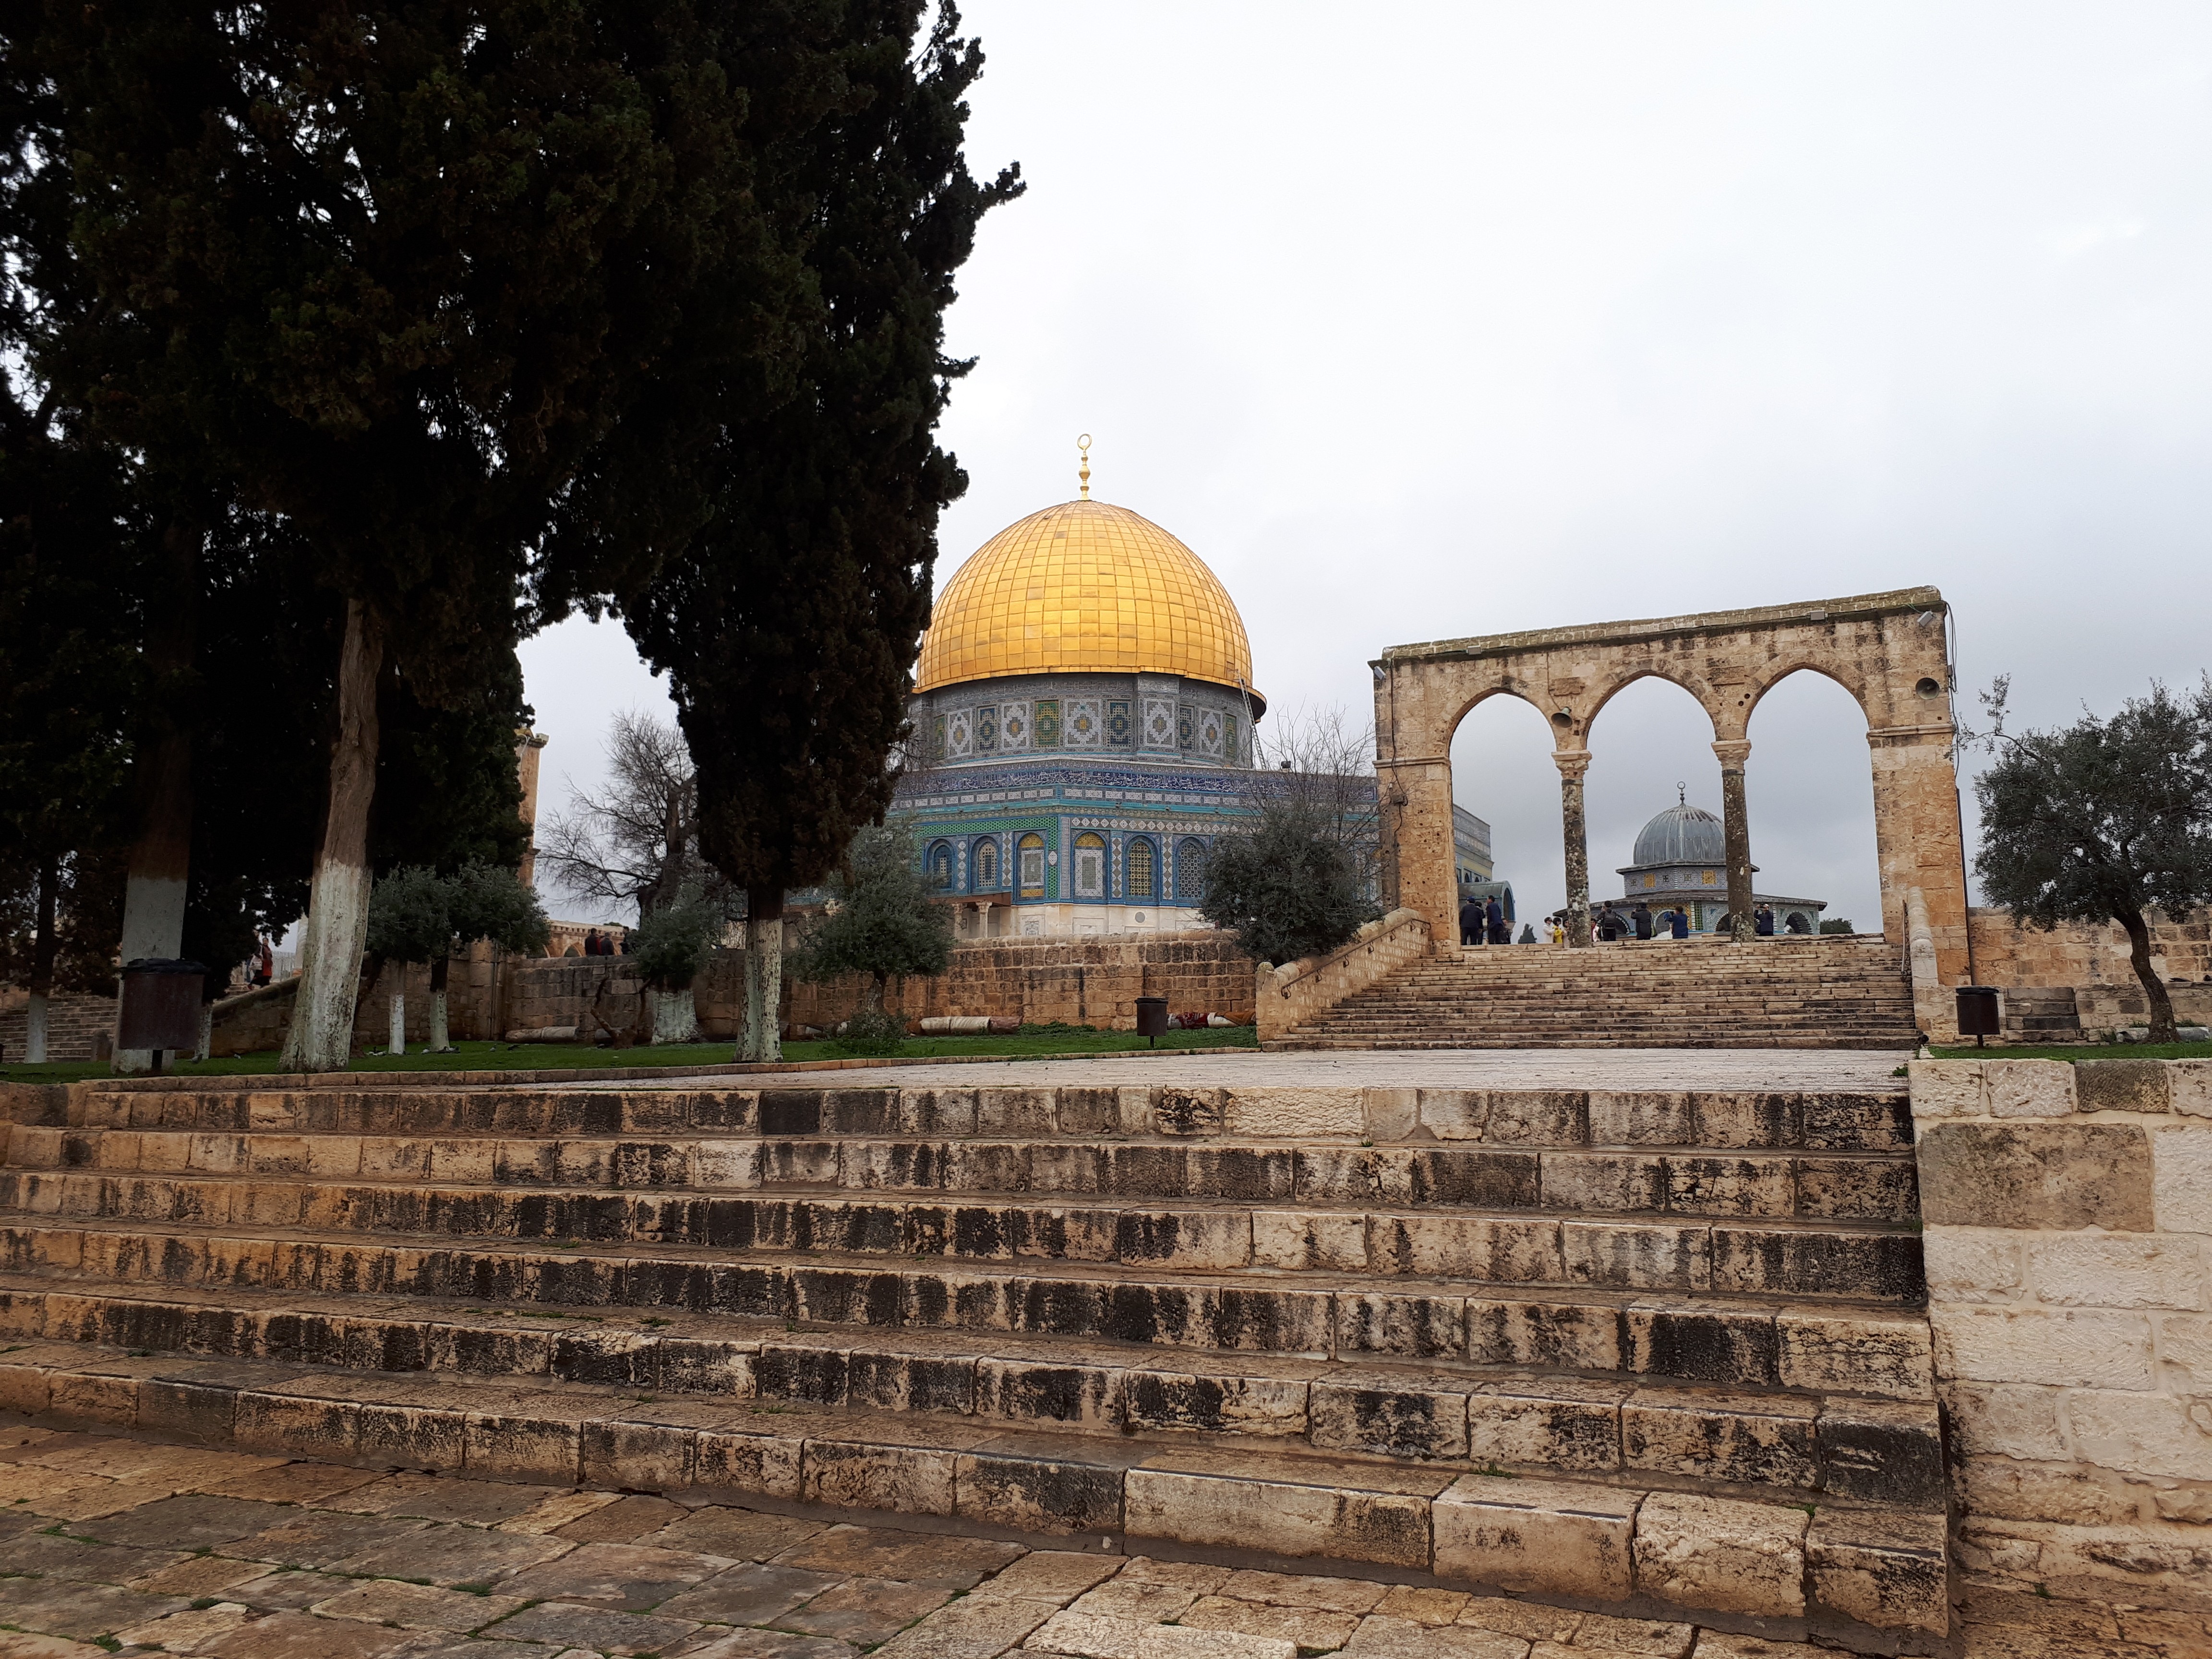 A view up to the Dome of the Rock